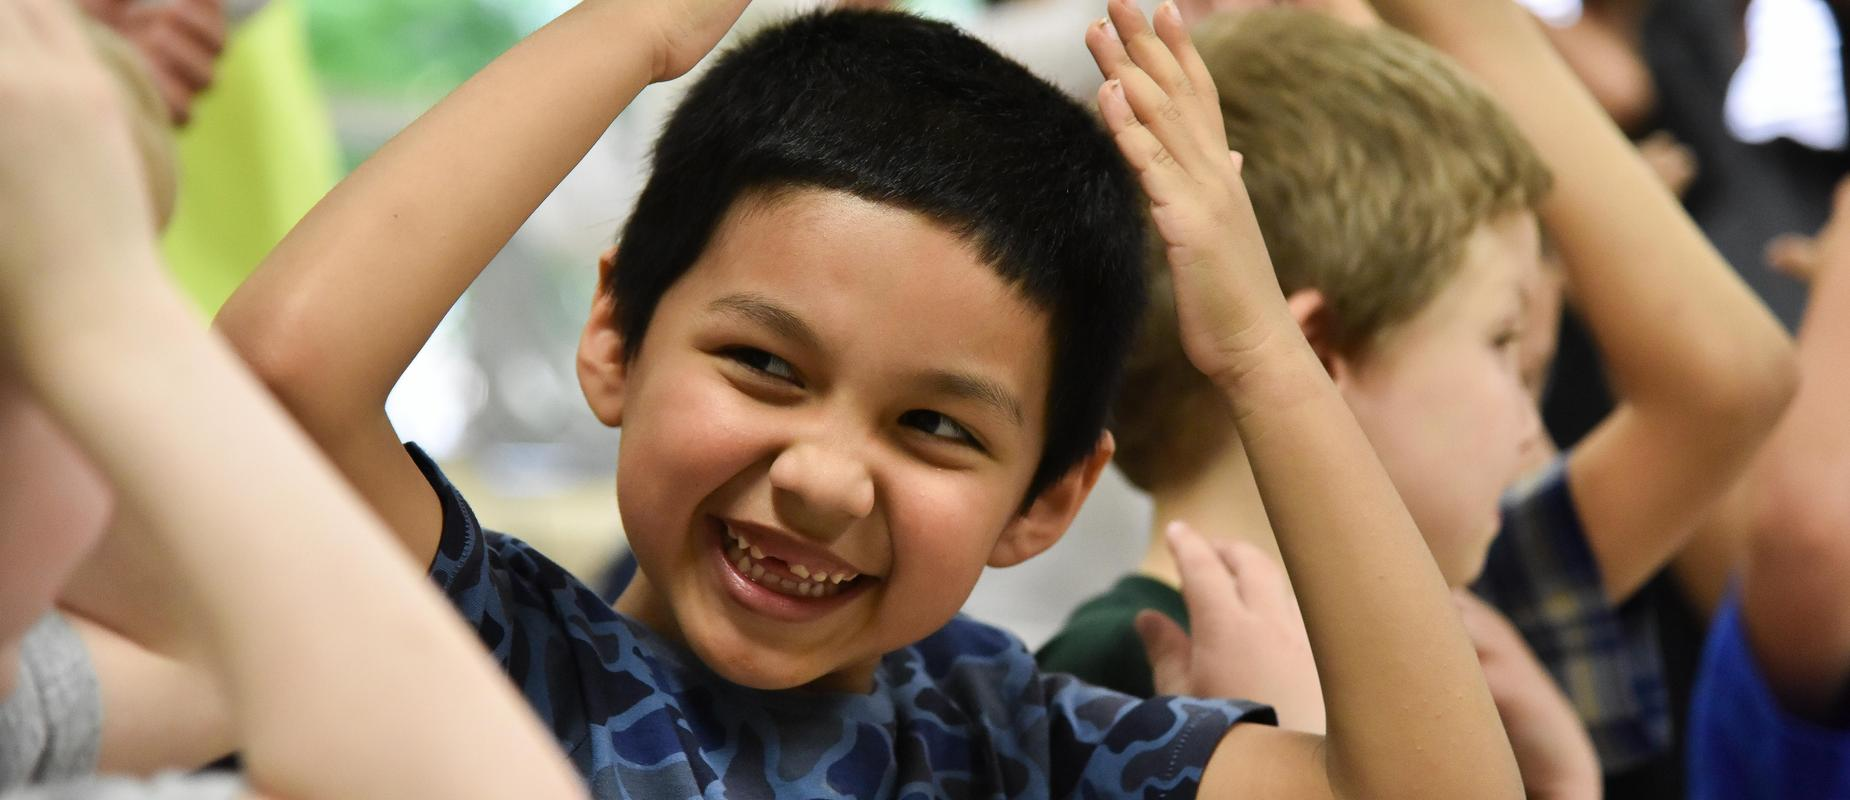 Young student smiling and putting his hands on his head